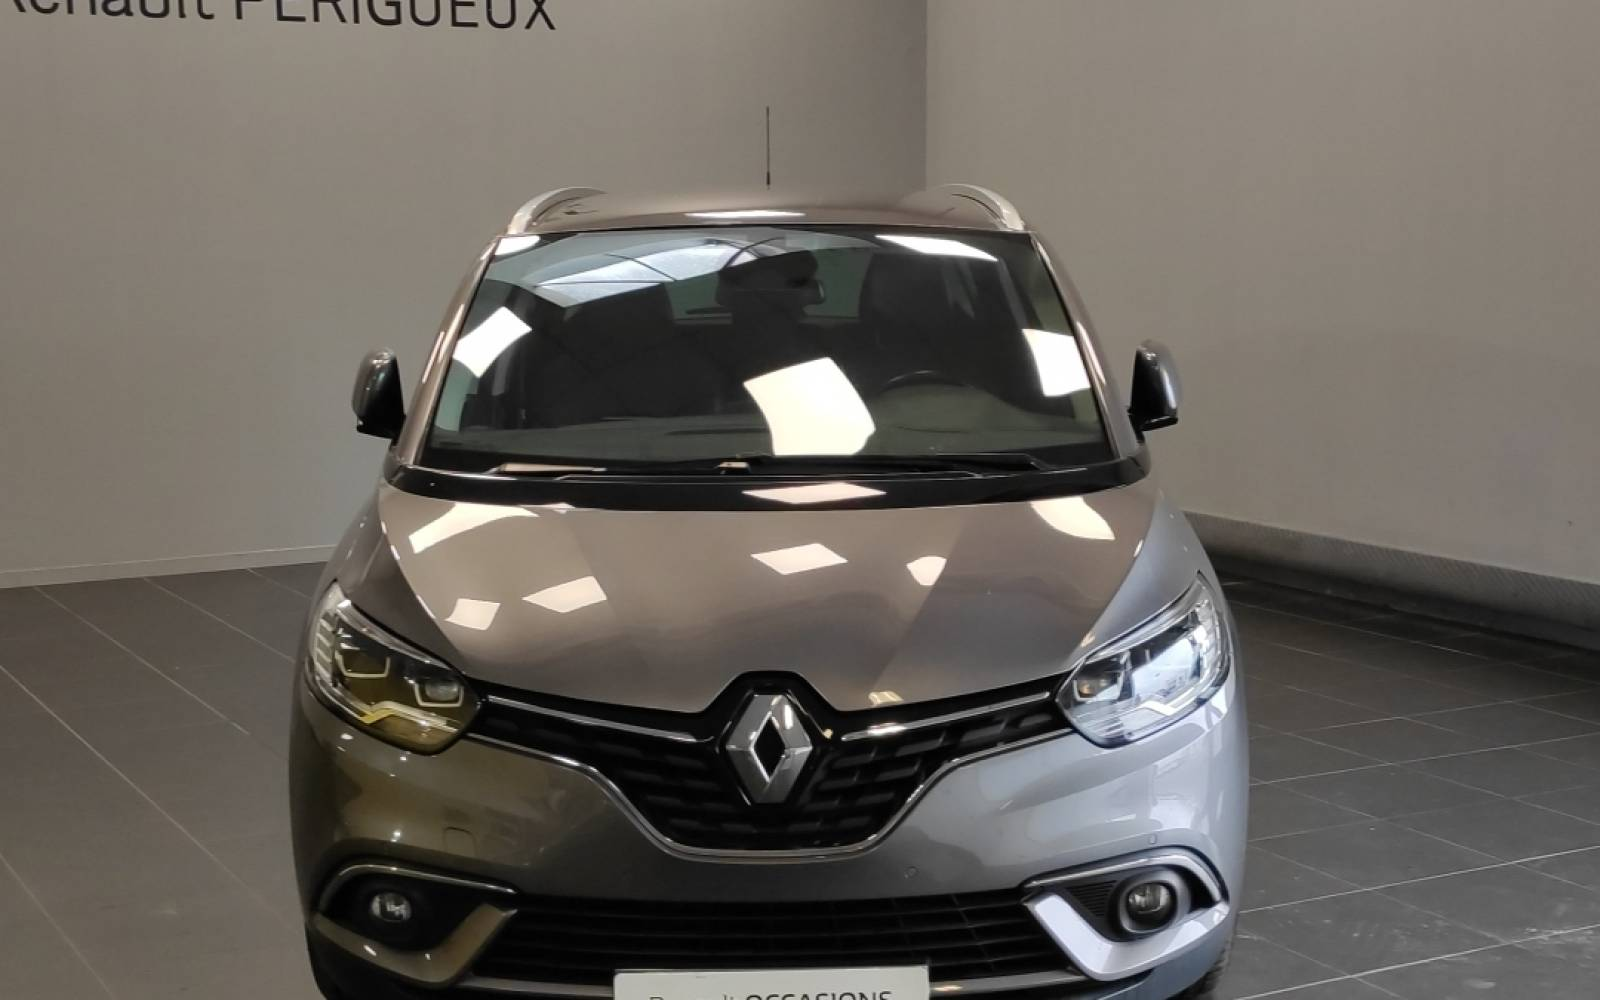 RENAULT Grand Scénic TCe 160 Energy EDC - véhicule d'occasion - Site Internet Faurie - Sarda - 24750 - Trelissac - 2